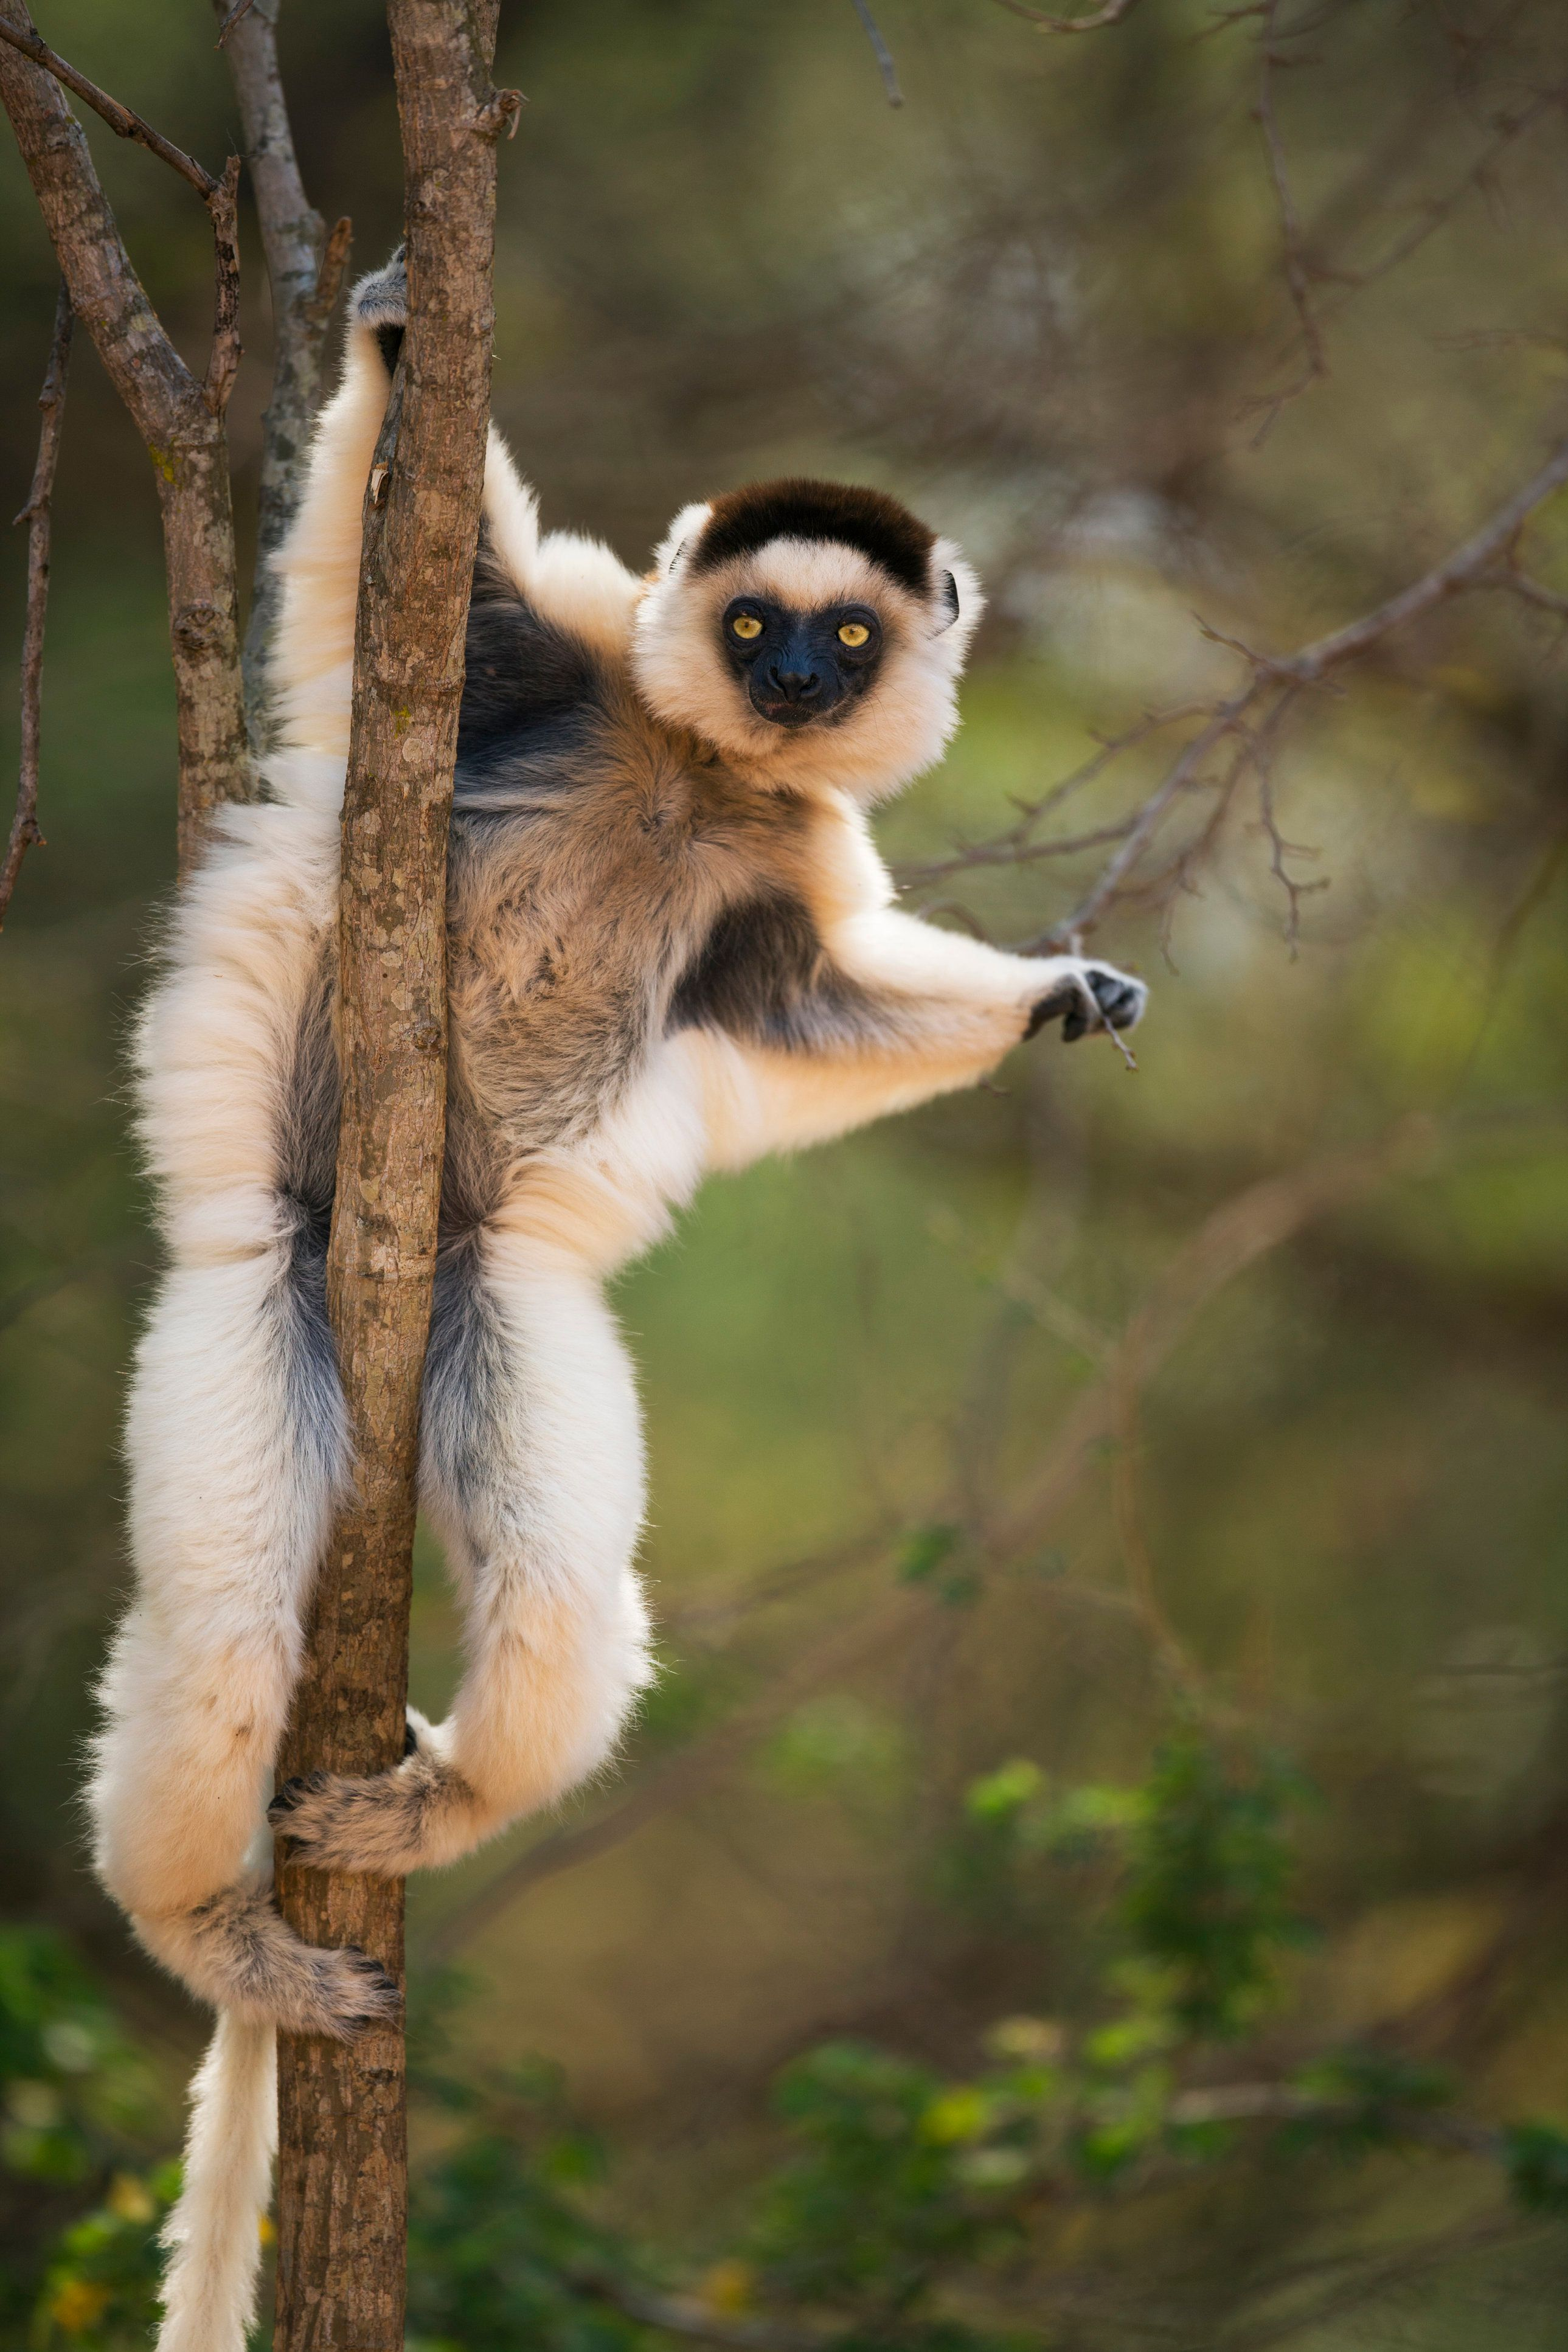 Verreaux's sifaka (Propithecus verreauxi) clinging to tree. Berenty Private Reserve, Madagascar. Oct 2008.